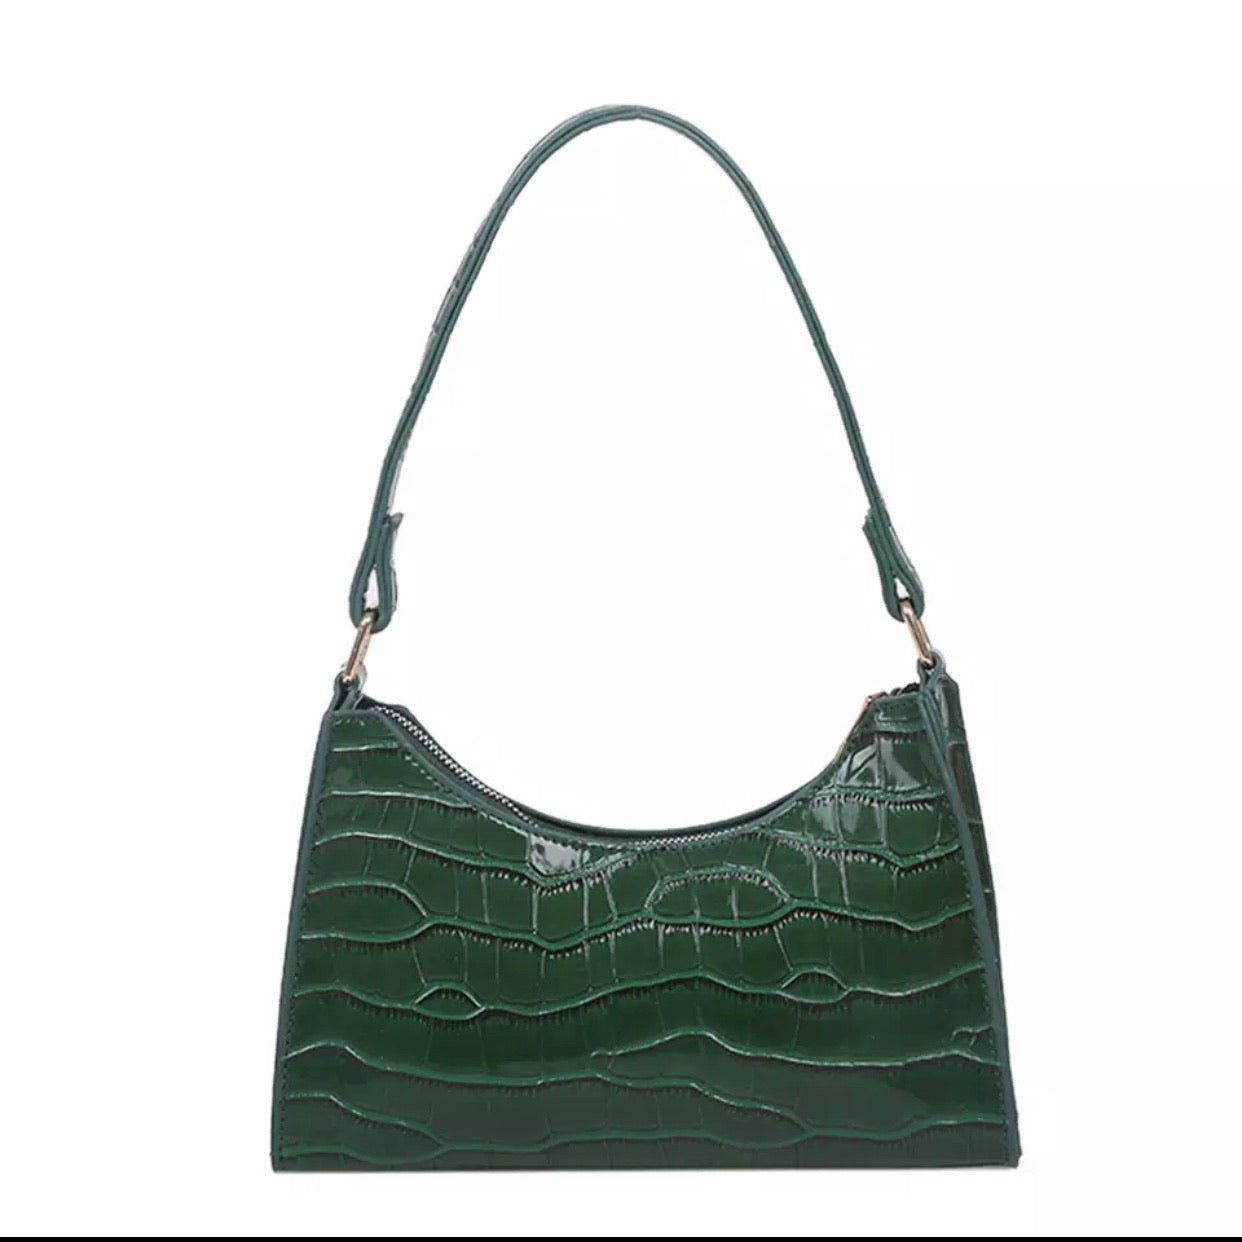 GREEN CROC SHOULDER BAG